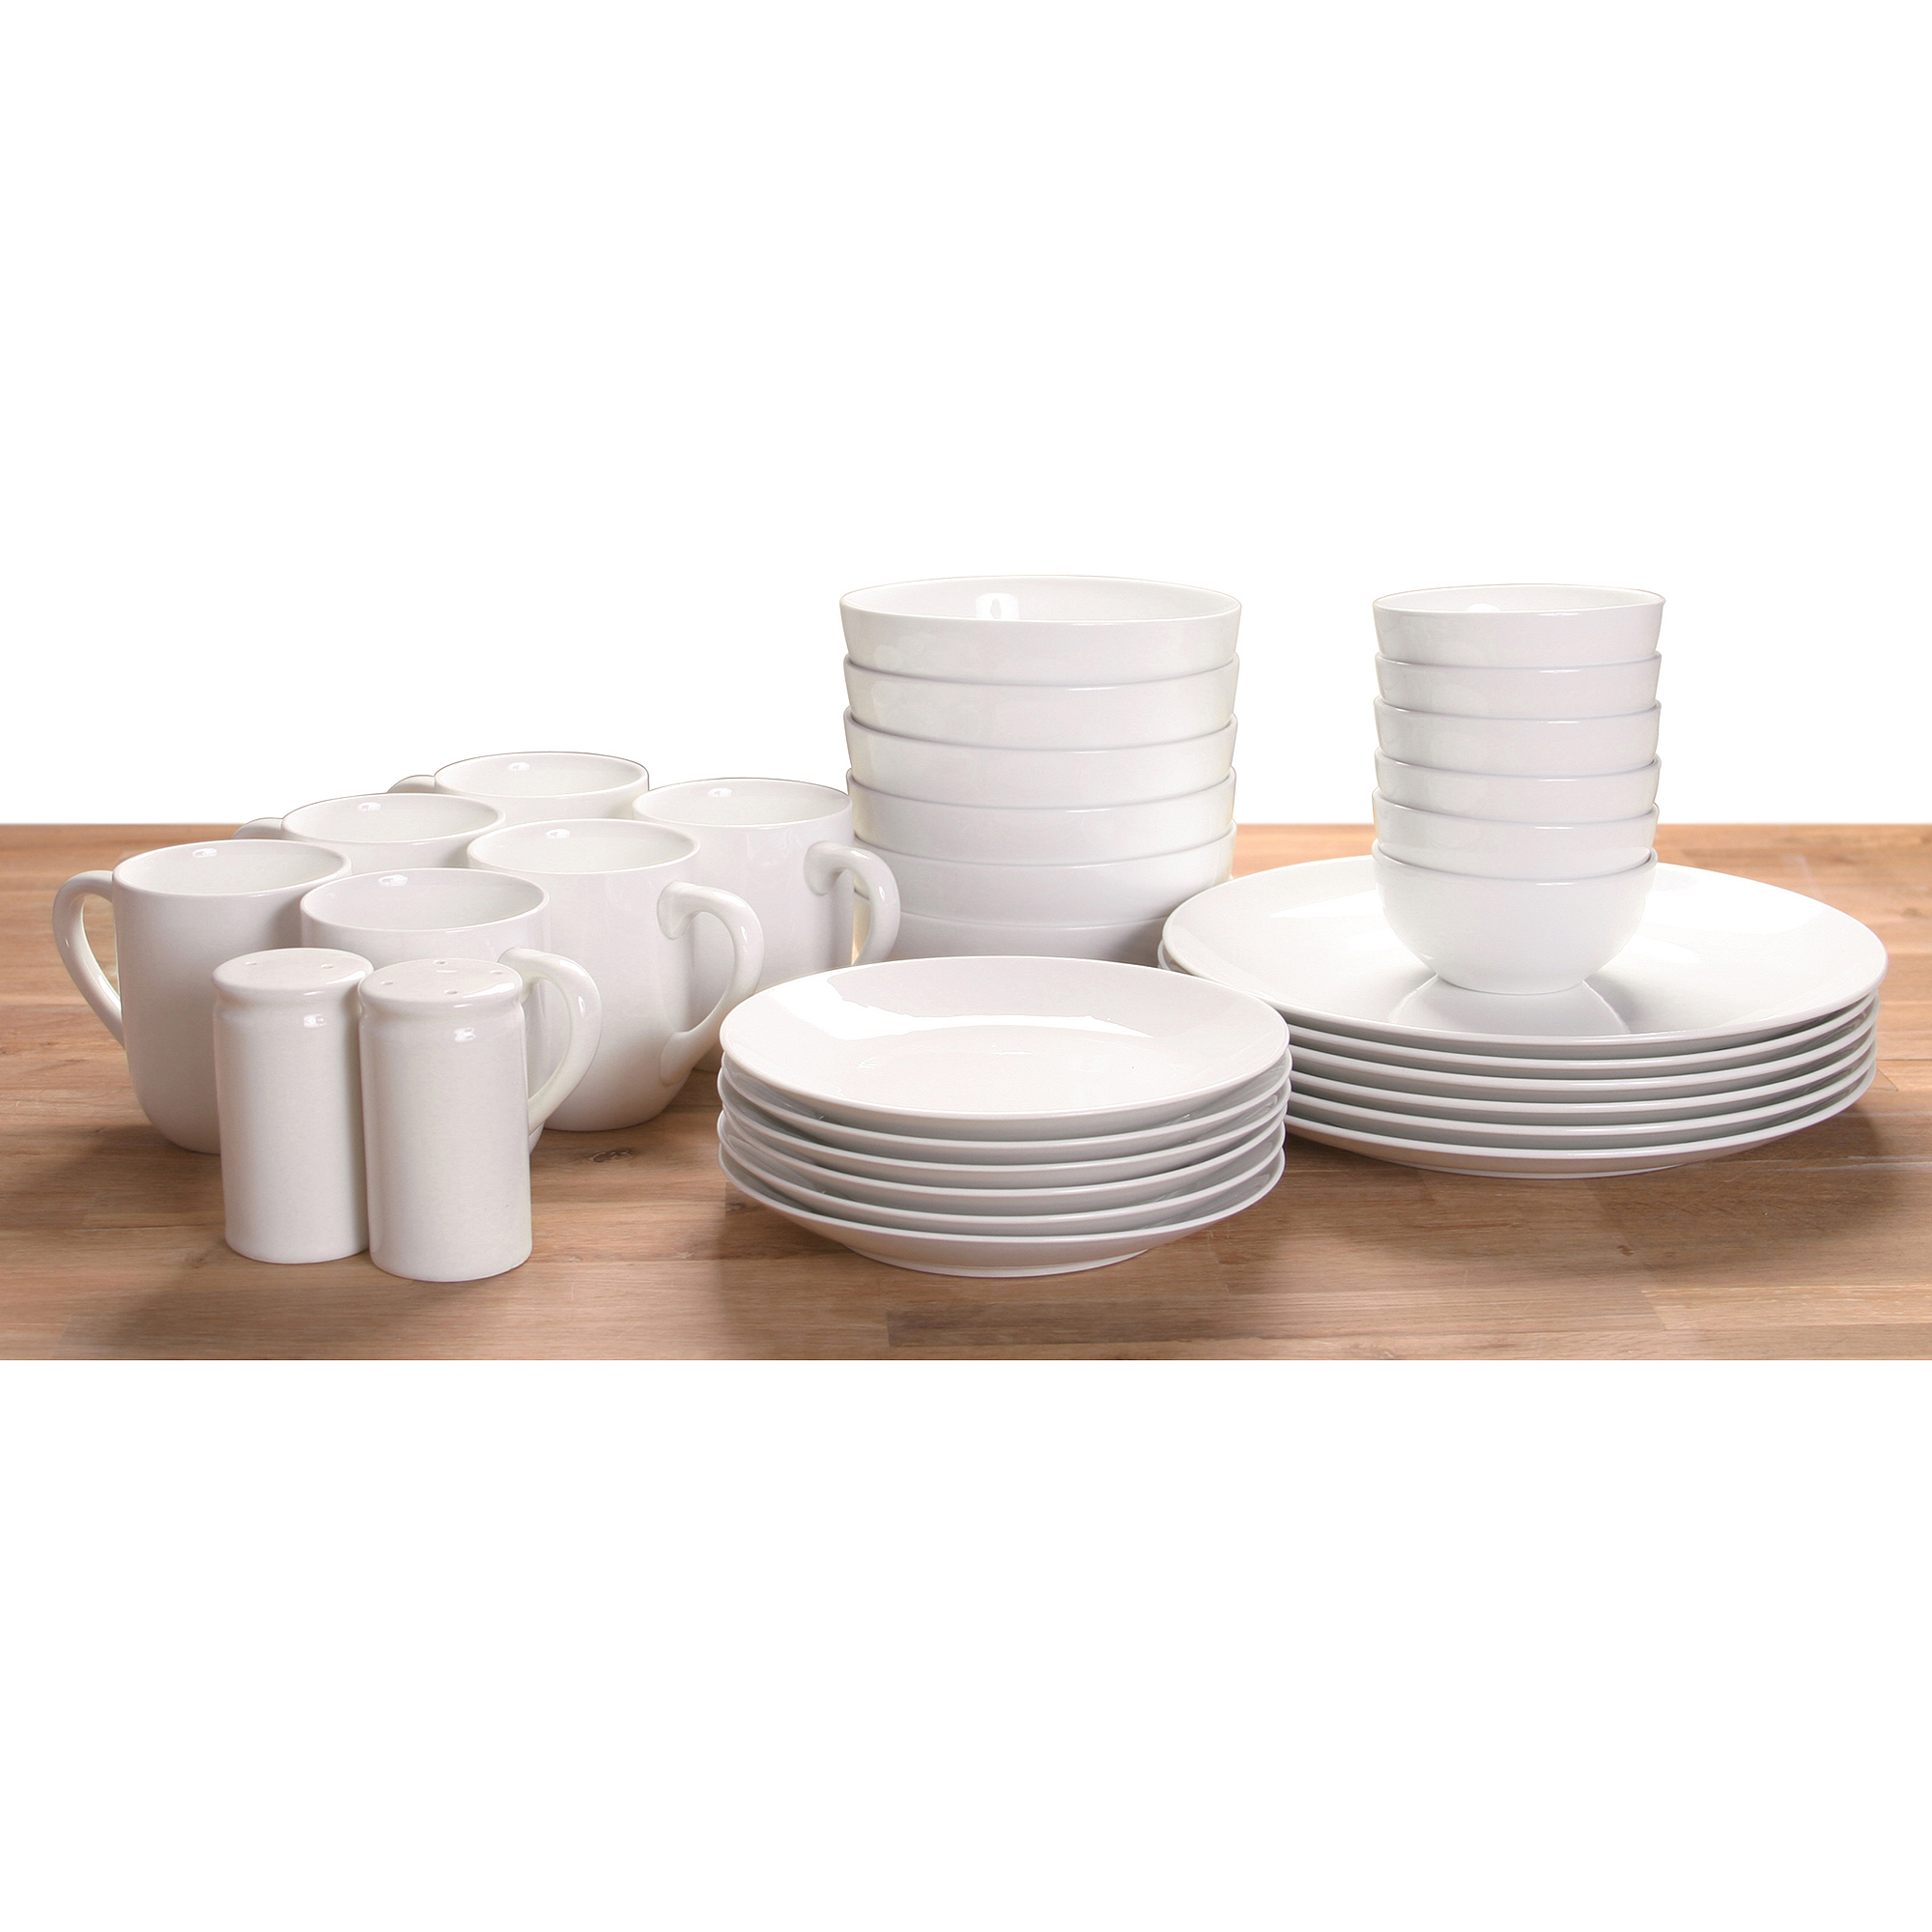 Corelle Livingware South Beach 16-Piece Dinnerware Set - Walmart.com